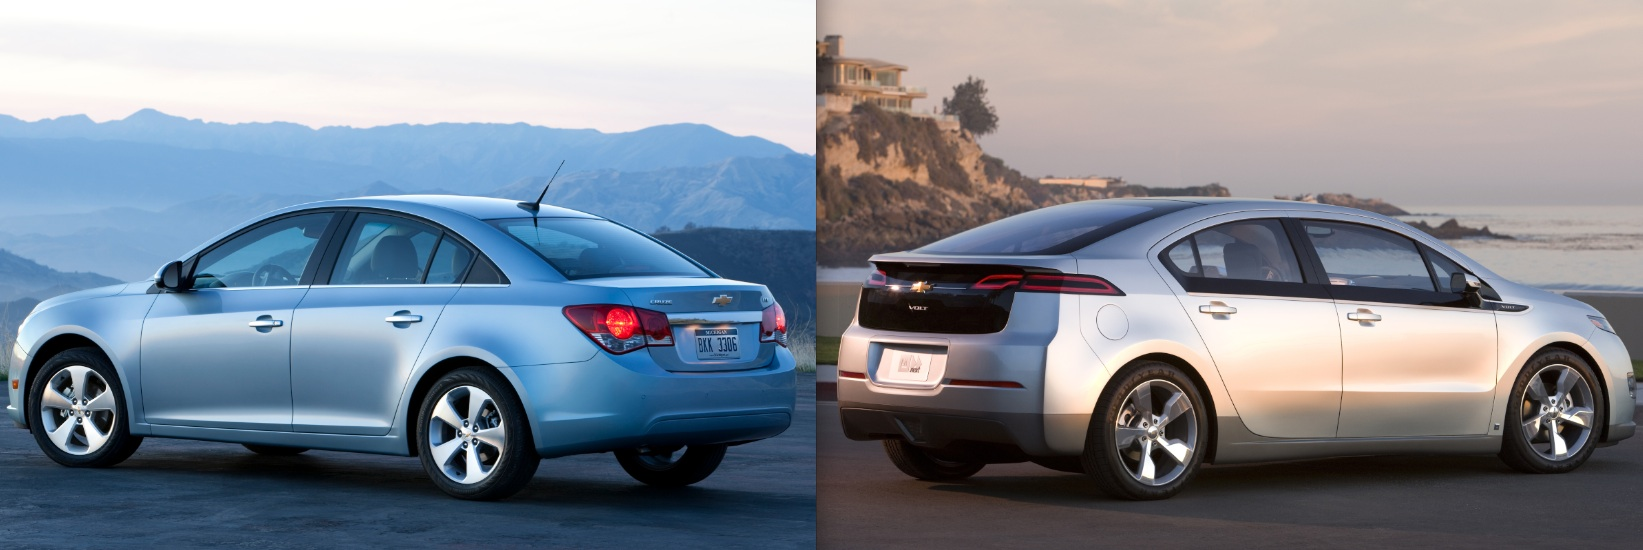 Could A Chevrolet Volt Cost Less To Own Than Cruze Gm 2011 Chevy Battery Problem Ltz And Shown Because Kiplinger Compared 2011s The Same Should Hold True For 2012 Models